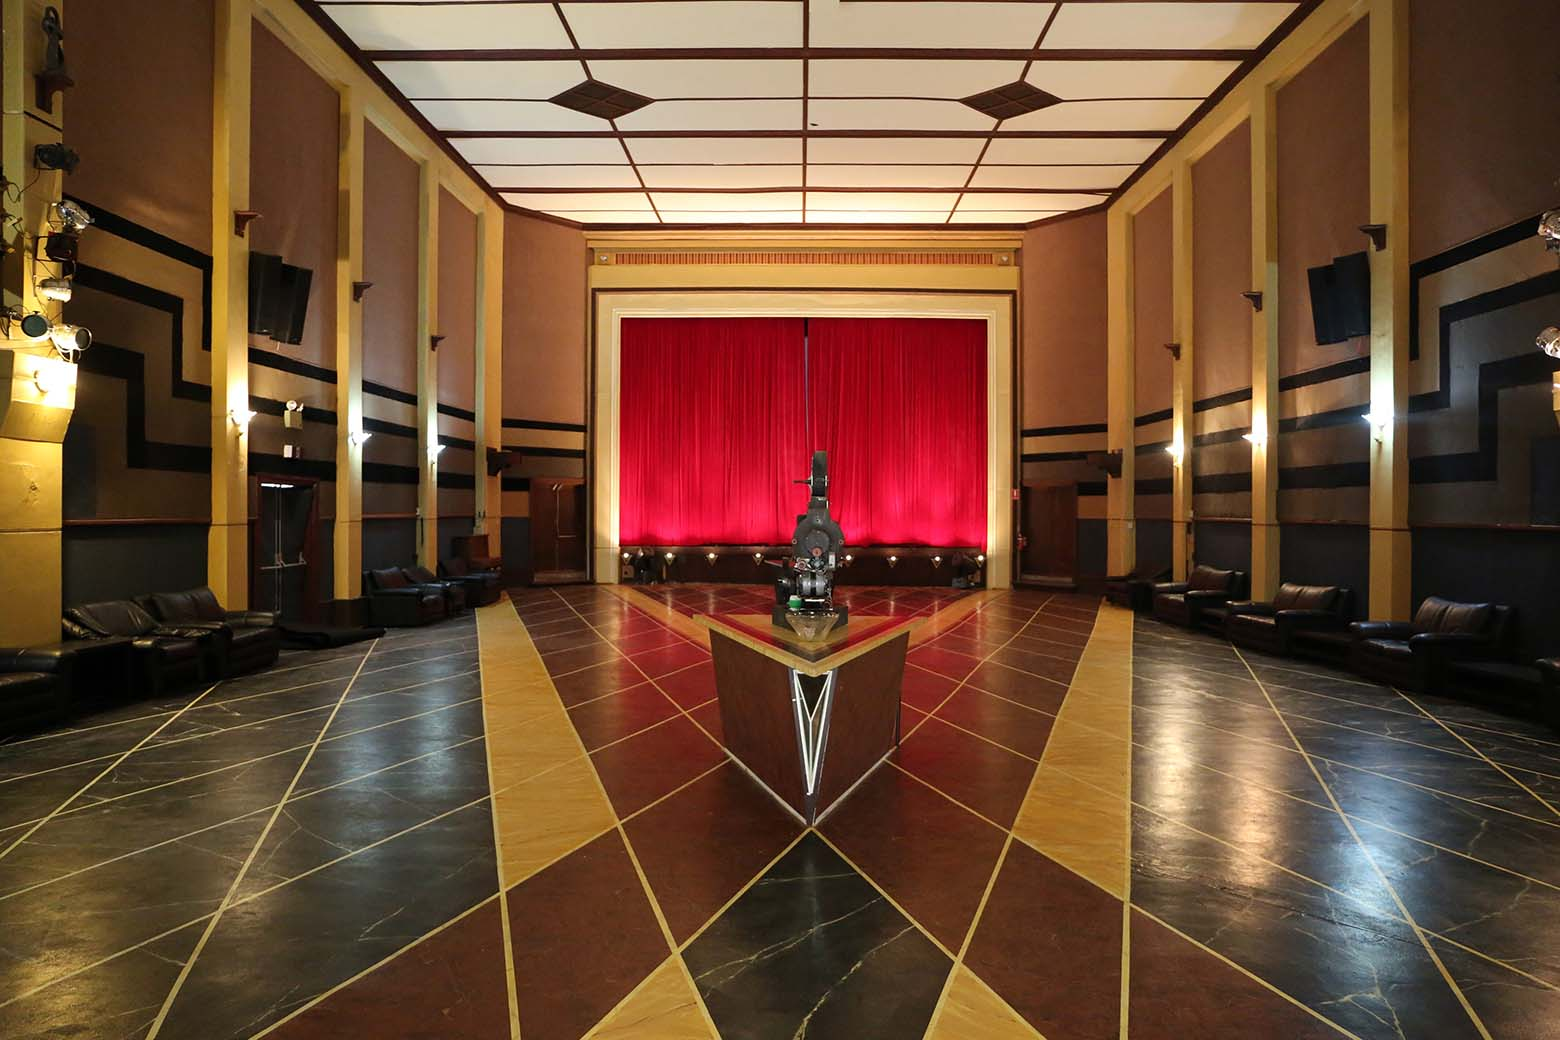 See the lovingly restored Paragon Theatre in Queenstown on your Lap of Tasmania road trip